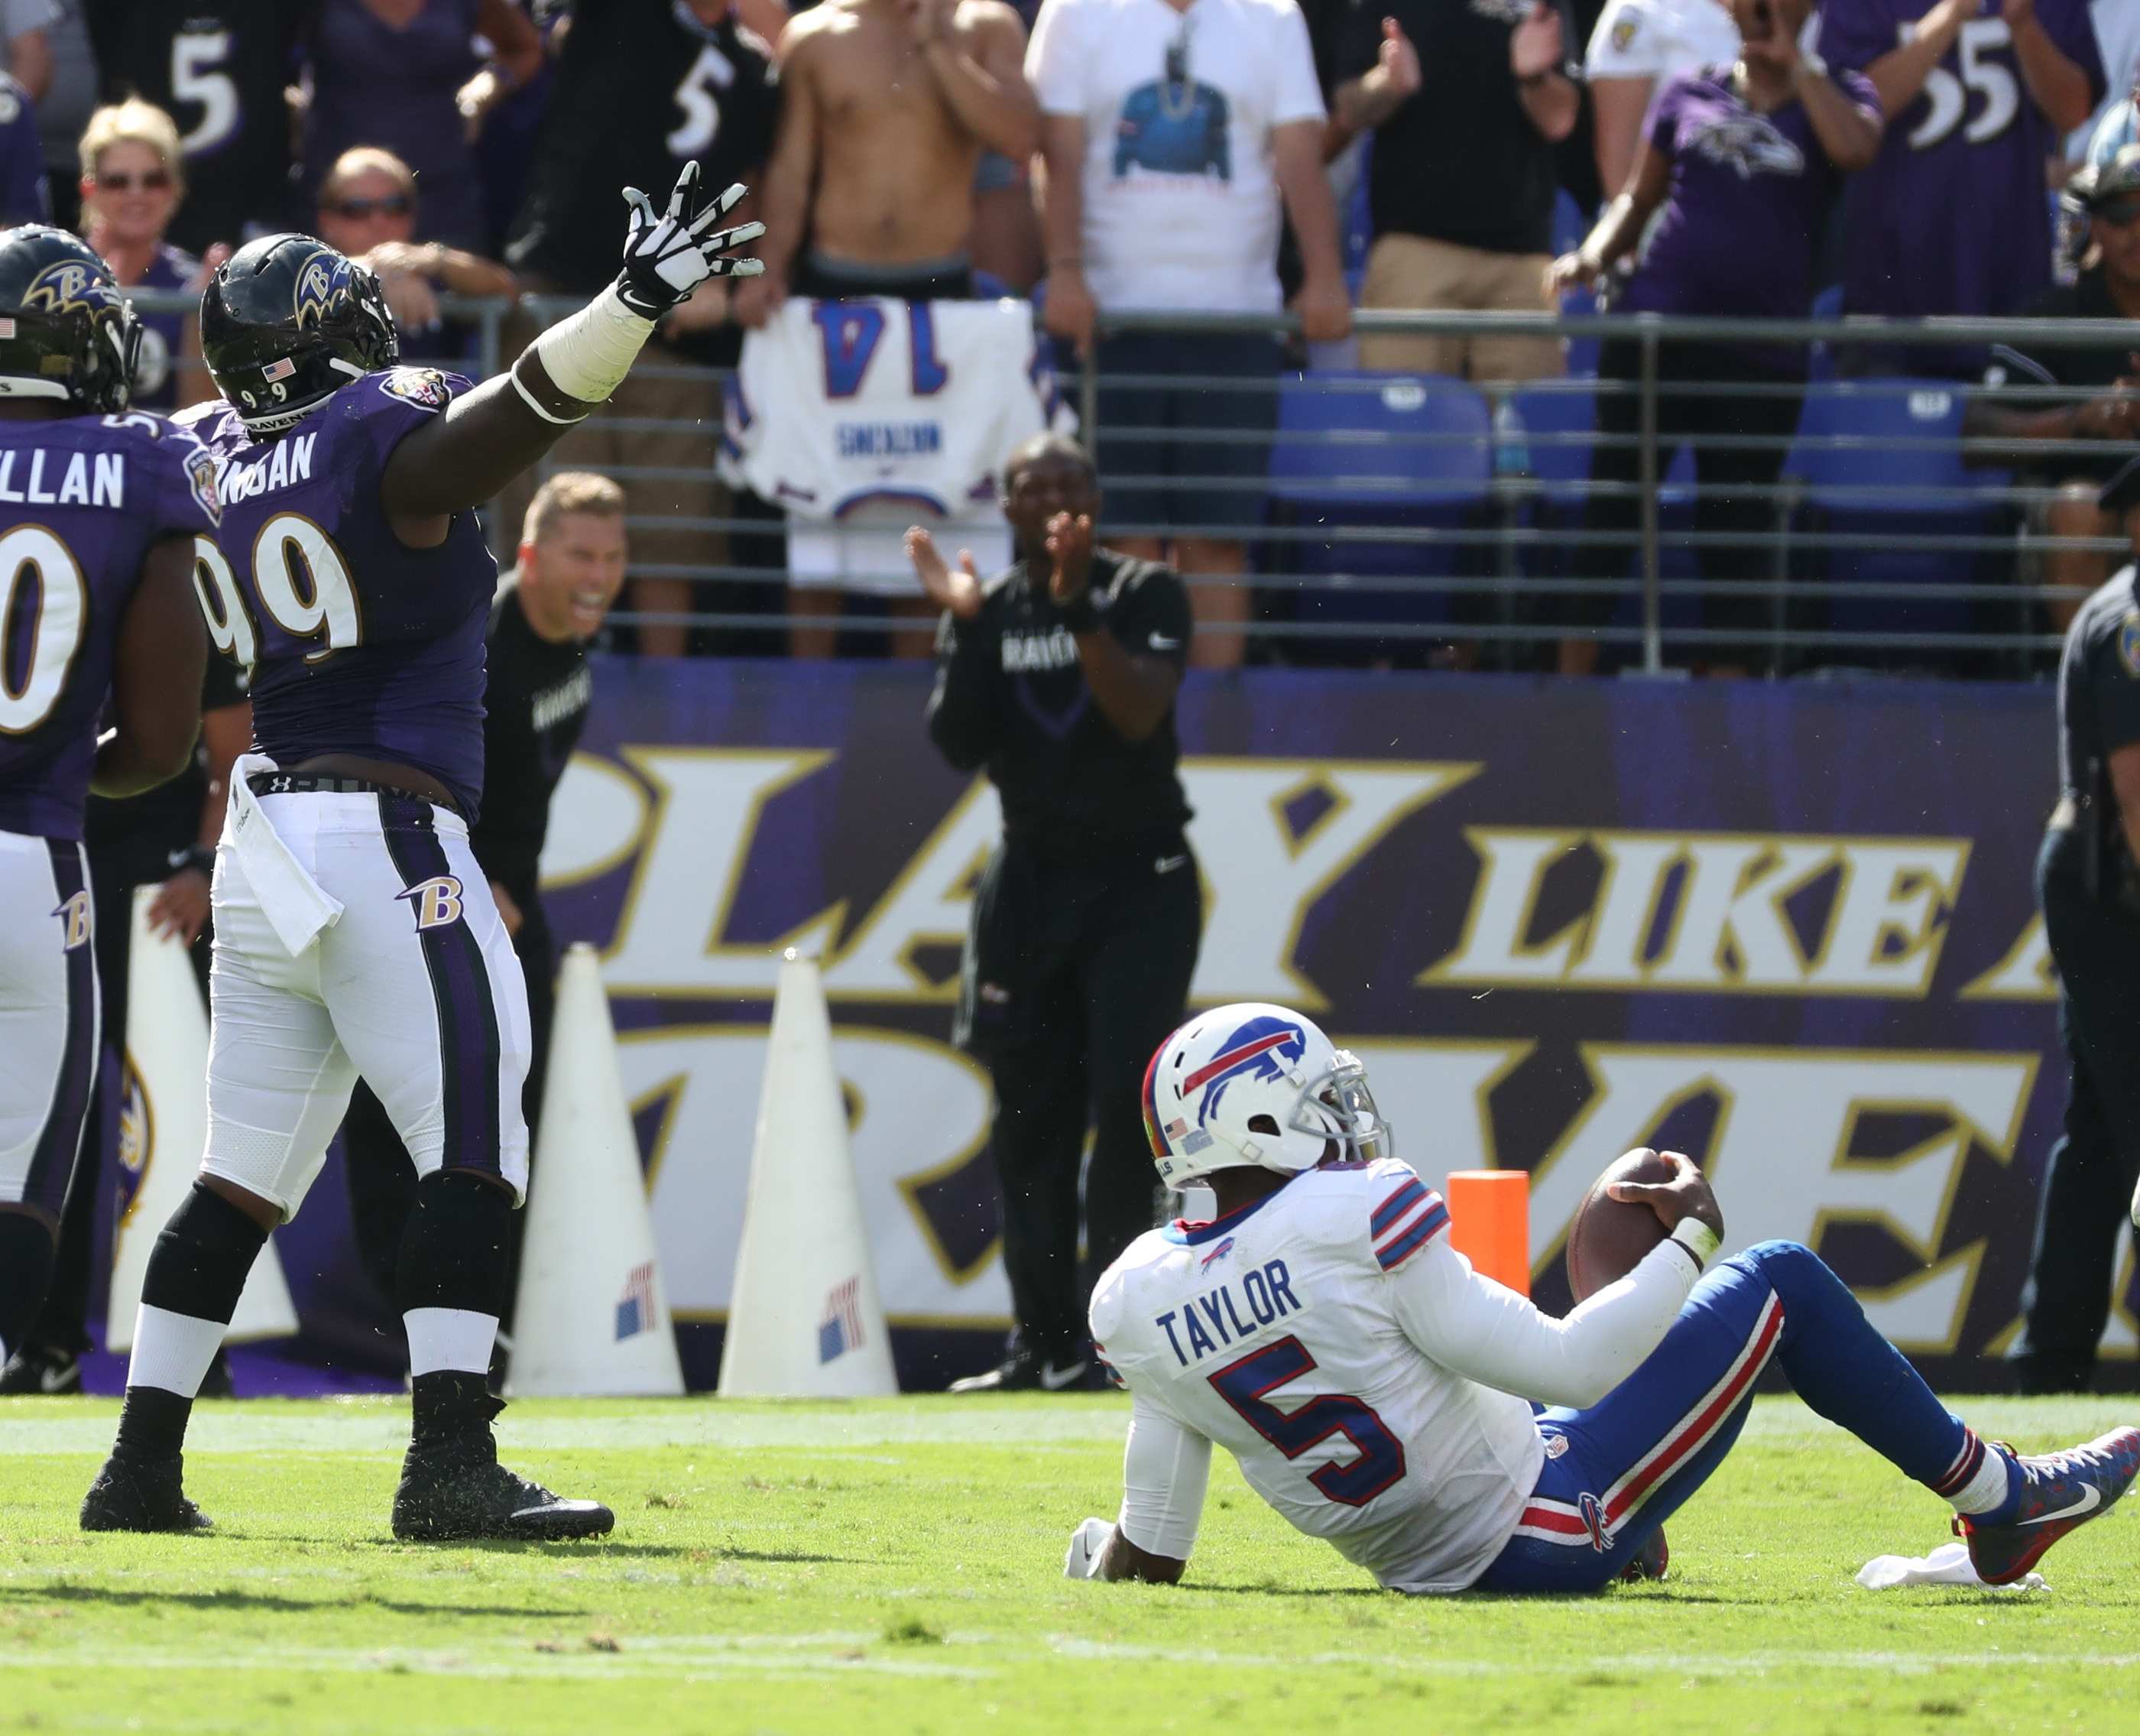 Buffalo Bills quarterback Tyrod Taylor (5) is sacked by Baltimore Ravens defensive end Timmy Jernigan (99) in the fourth quarter at M&T Bank Stadium in Baltimore,MD on Sunday, Sept. 11, 2016.  (James P. McCoy/ Buffalo News)